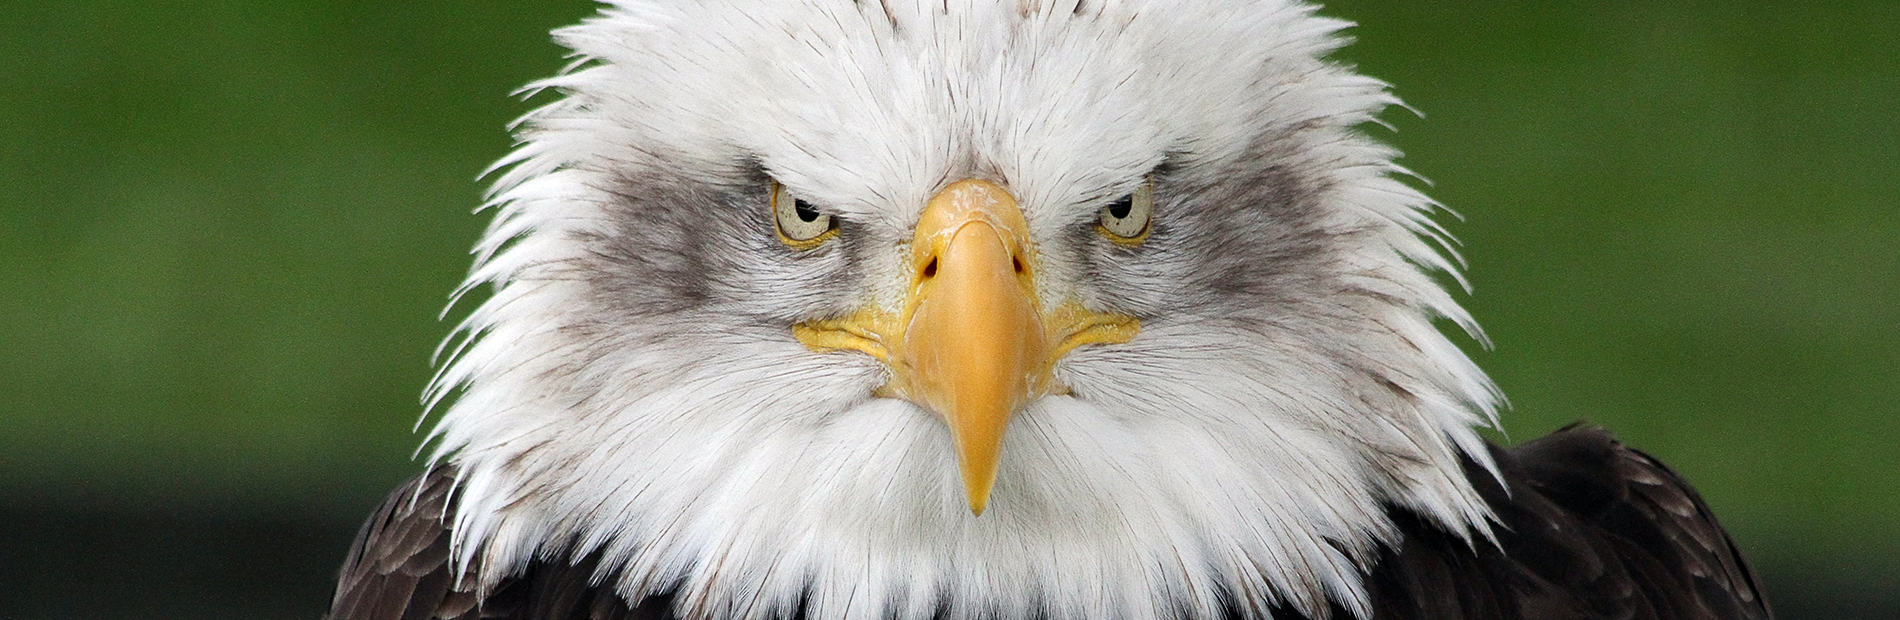 Intense Bald Eagle